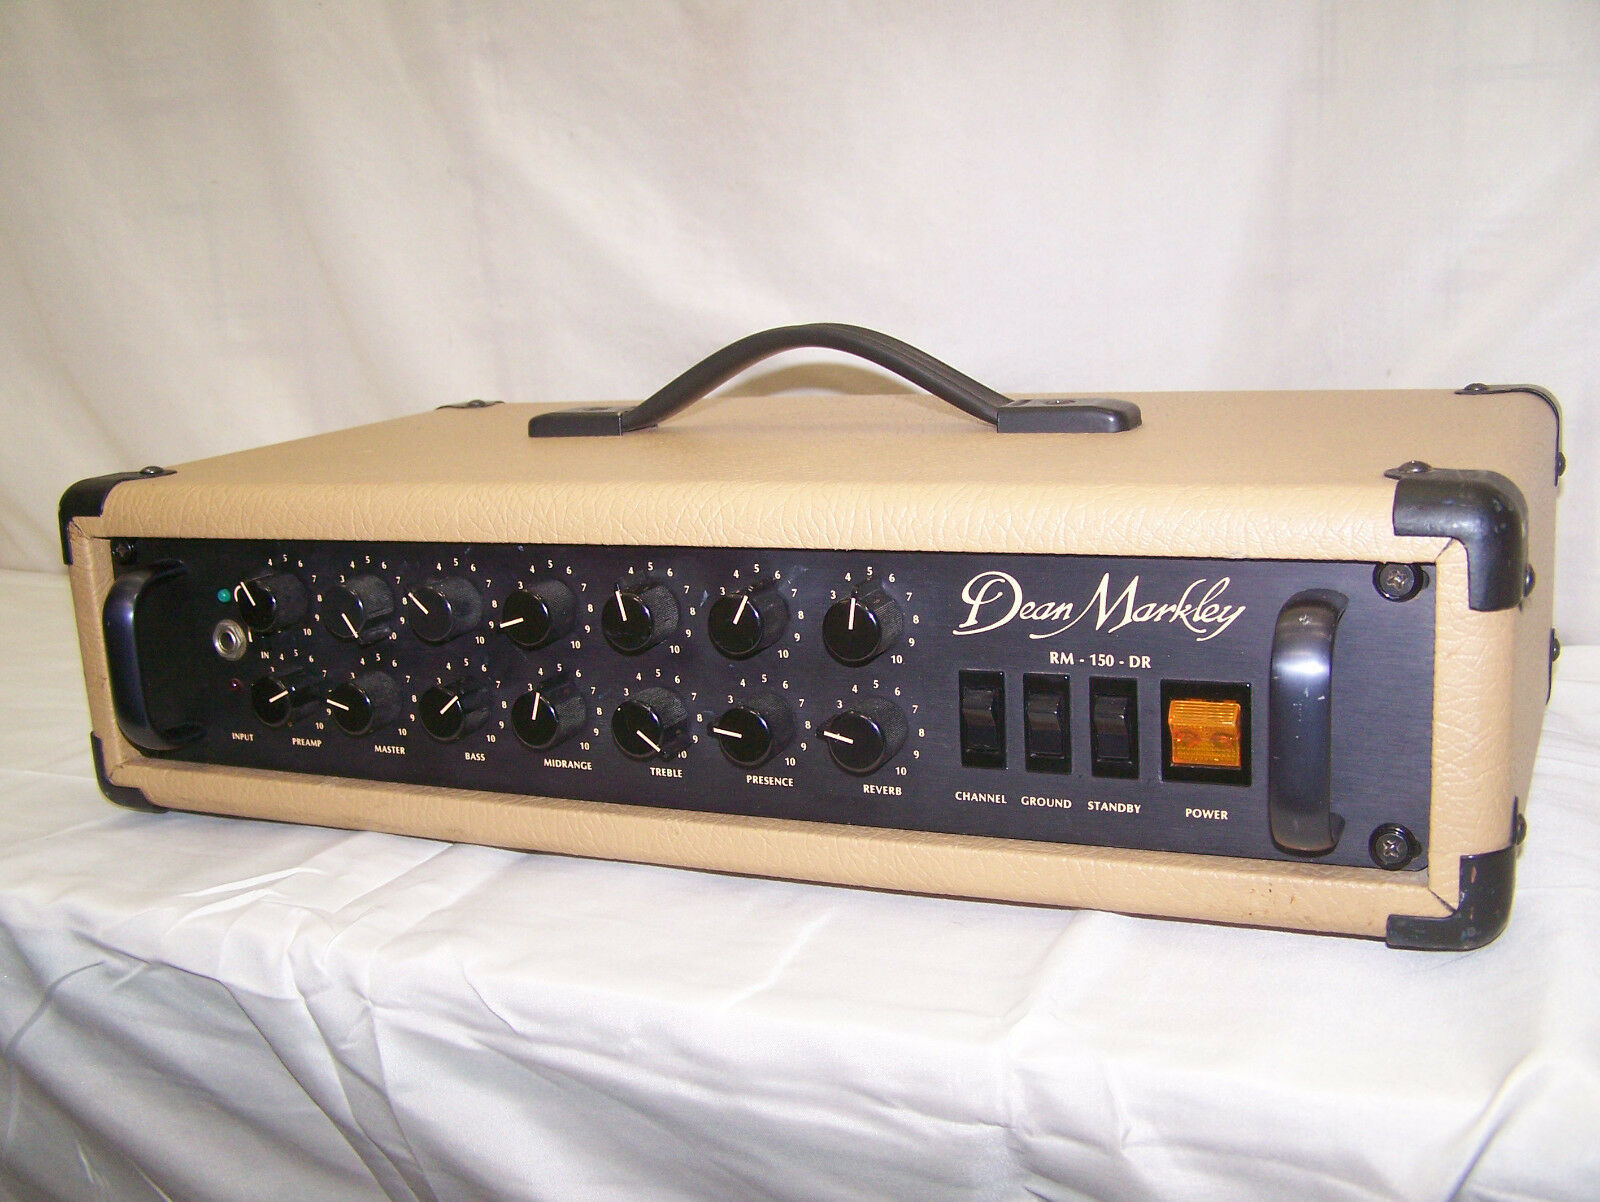 Dean Markley tube 1980's vintage amplifier head model RM-150-DR, Made in USA